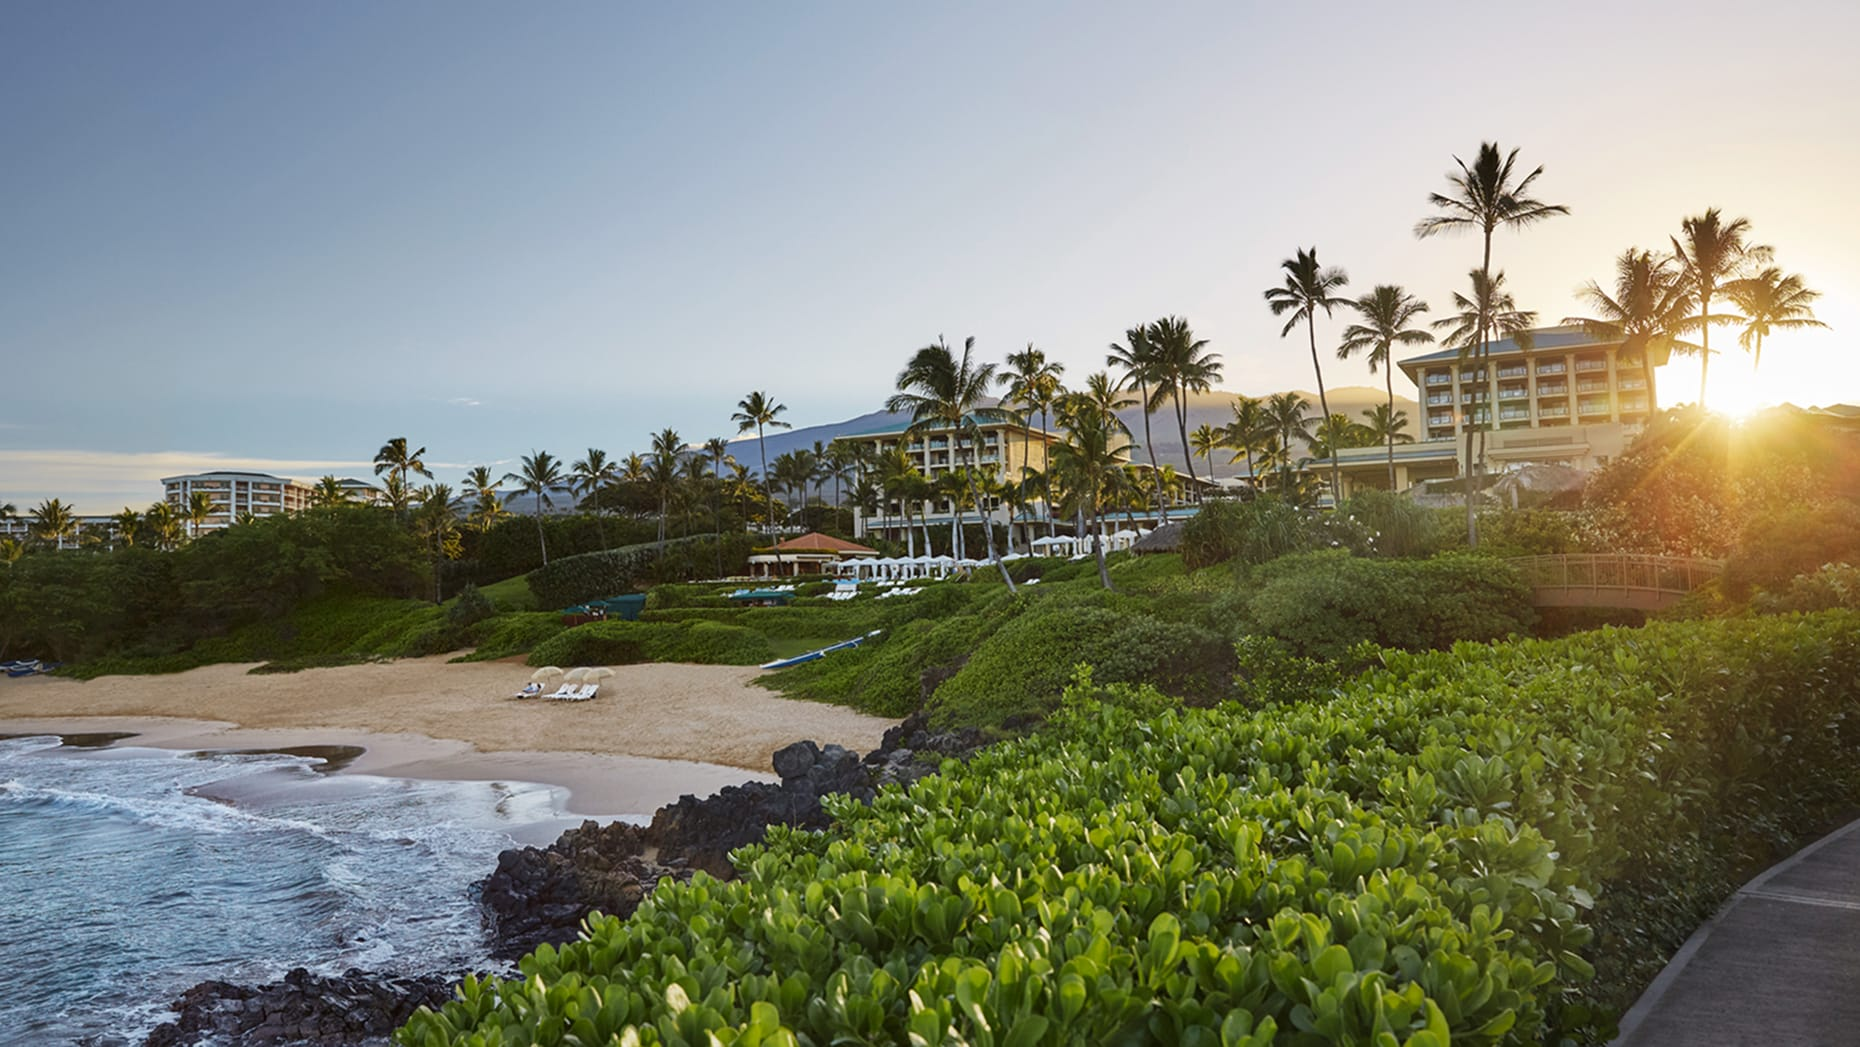 Best Maui Resorts for Families: Where to Stay on Maui with Kids featured by top Hawaii blog, Hawaii Travel with Kids: https://www.fourseasons.com/alt/img-opt/~80.1860/publish/content/dam/fourseasons/images/web/MAU/MAU_1476_aspect16x9_2.jpg